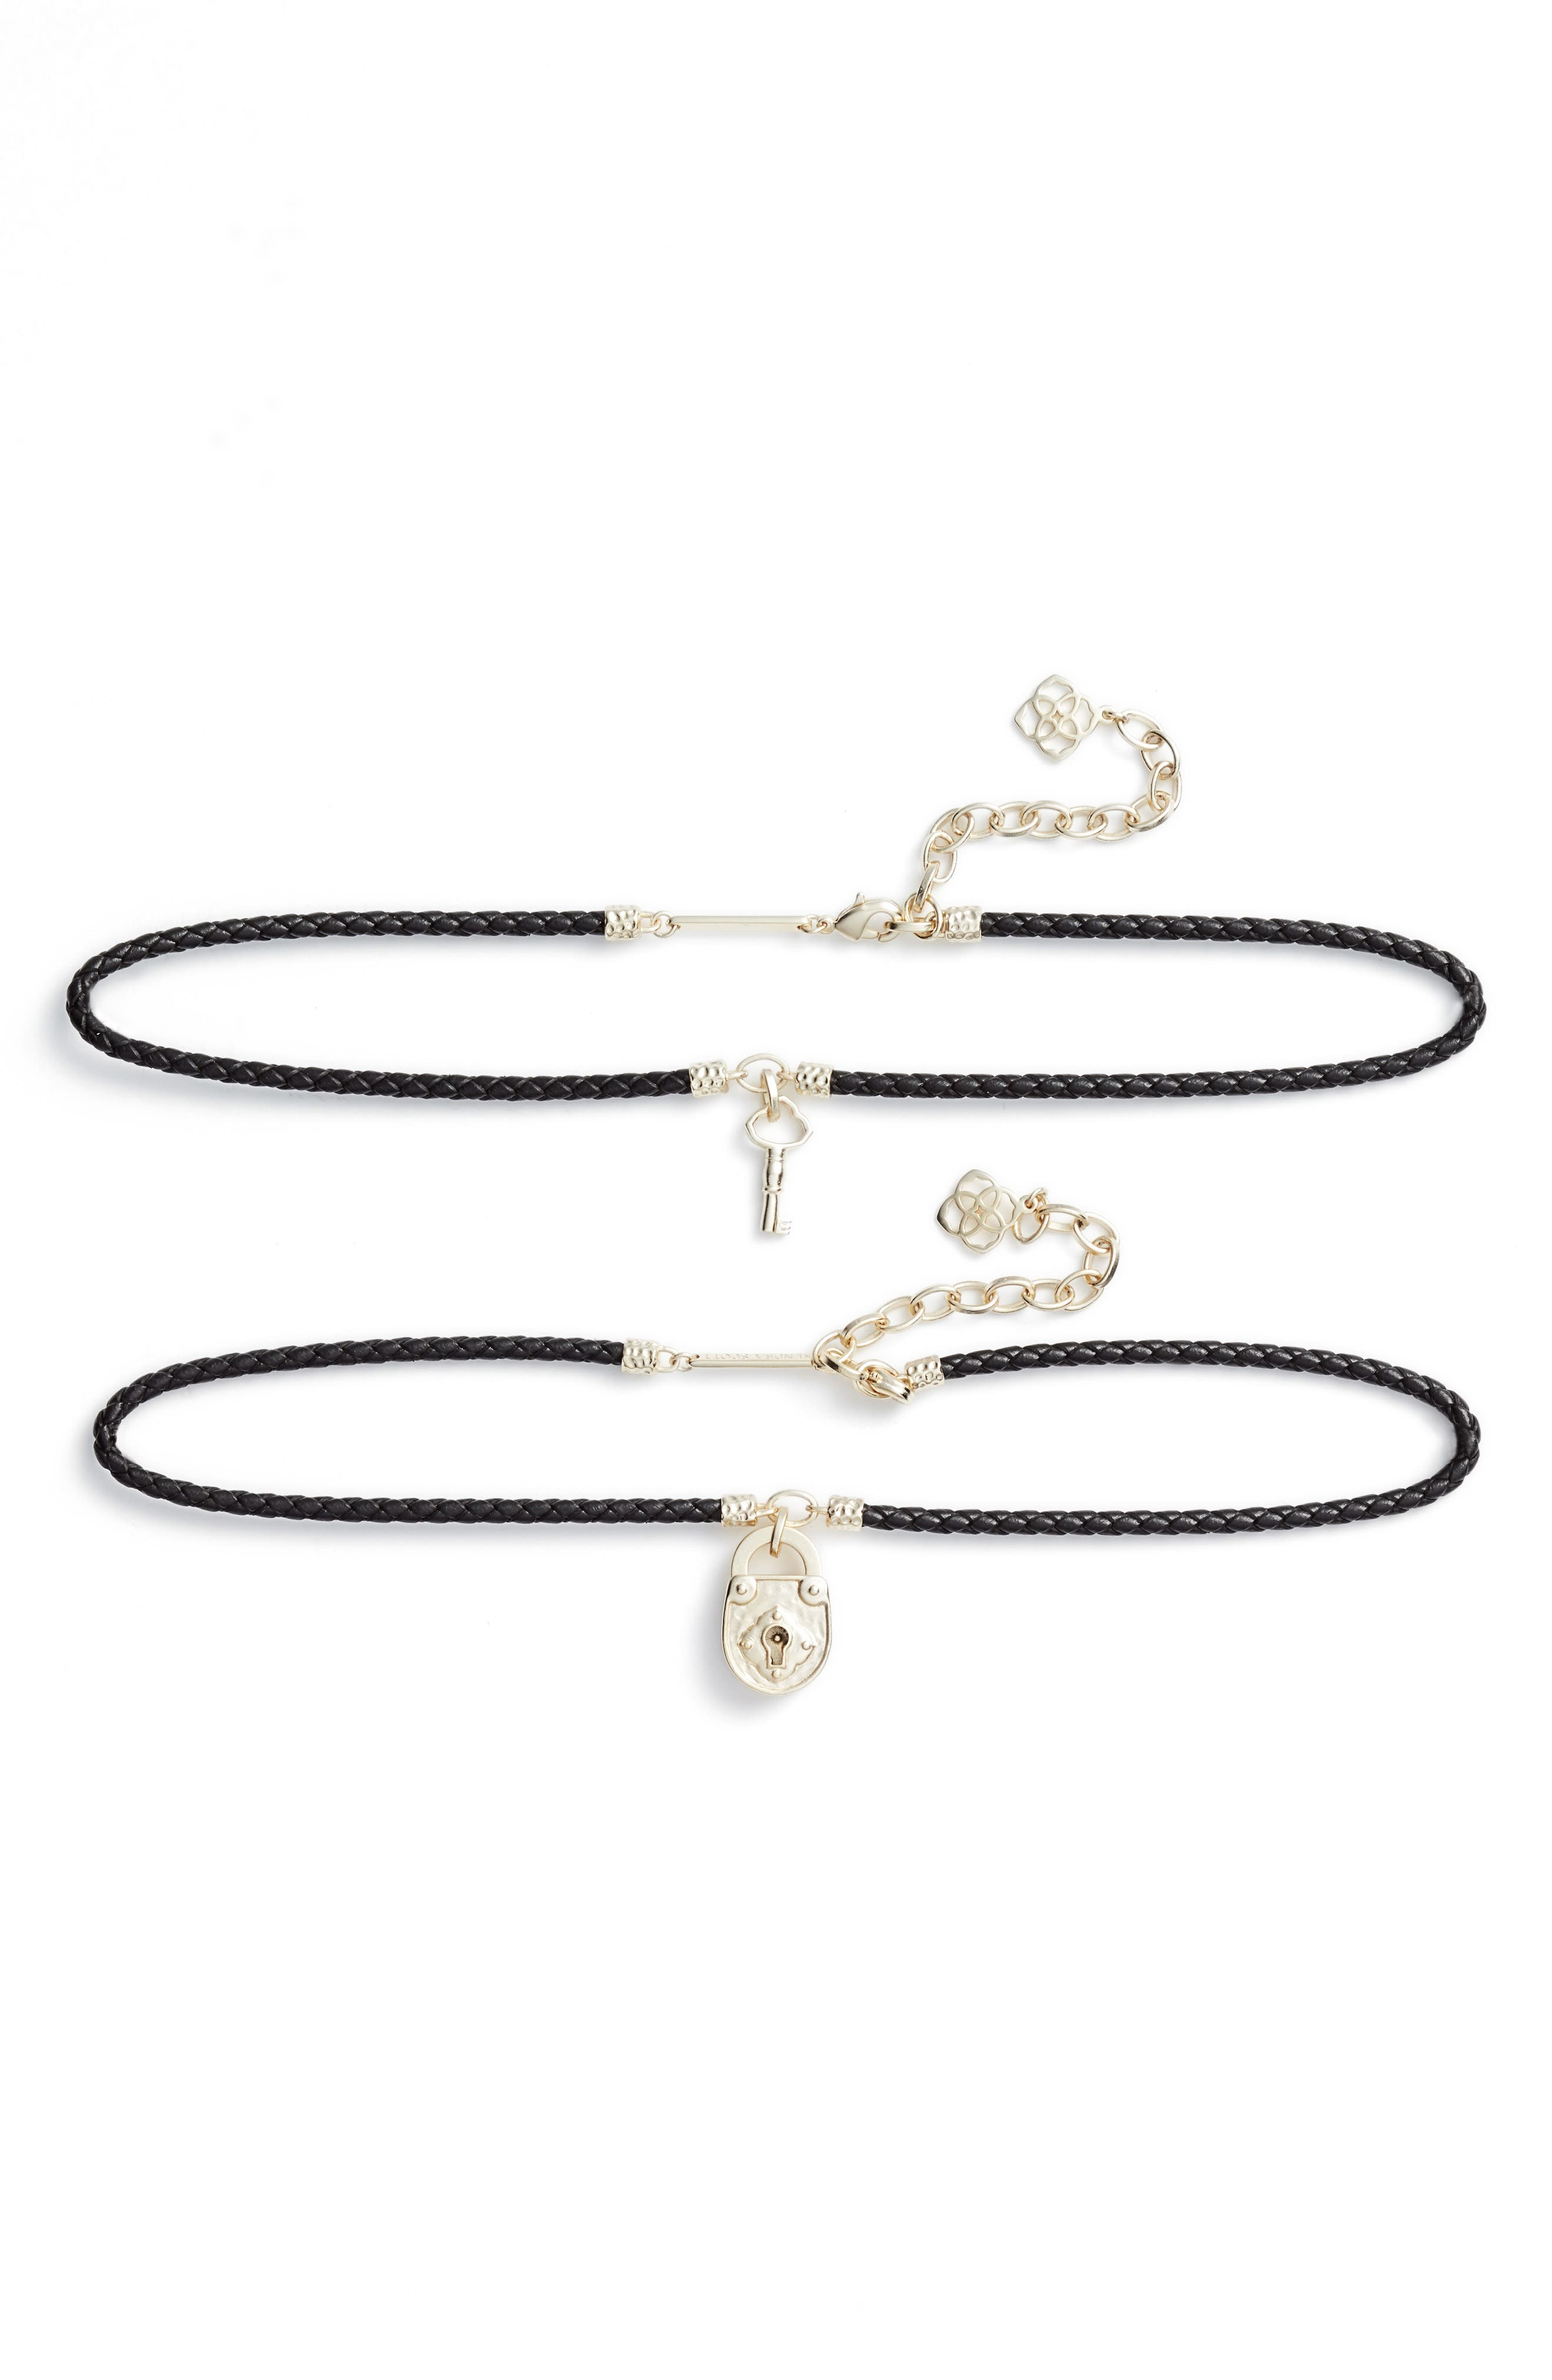 Sunny Set of 2 Choker Necklaces,                         Main,                         color, Black Leather/ Gold